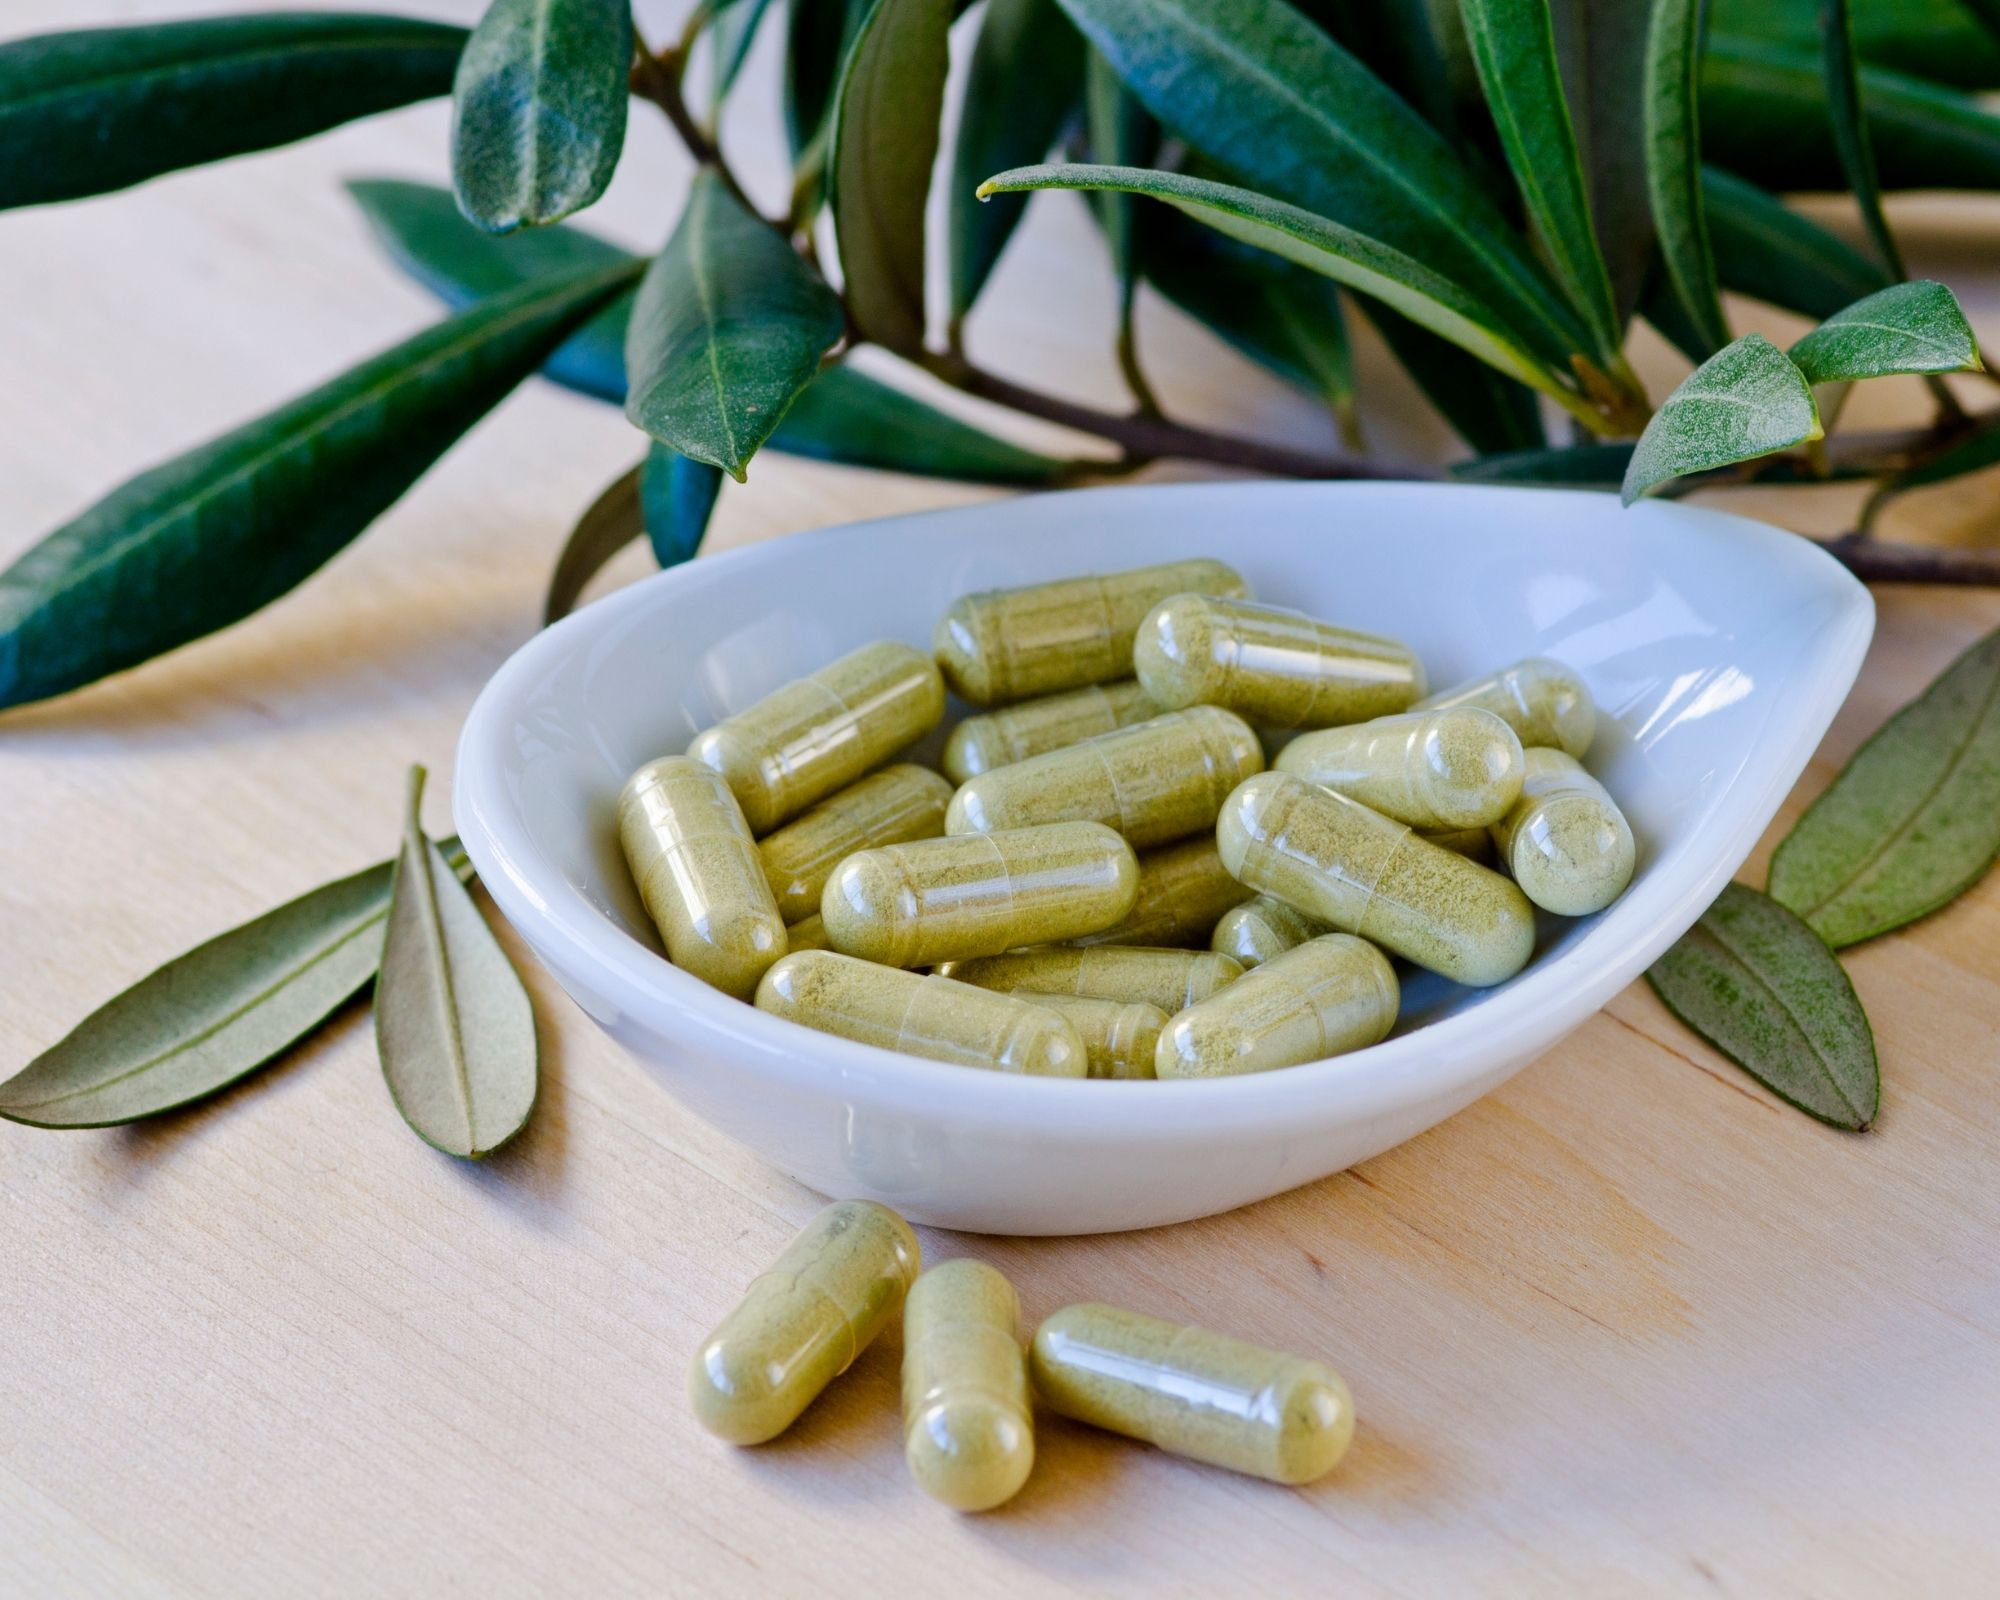 Green pills and leaves in the background - meant to symbolize olive leaf extract pills